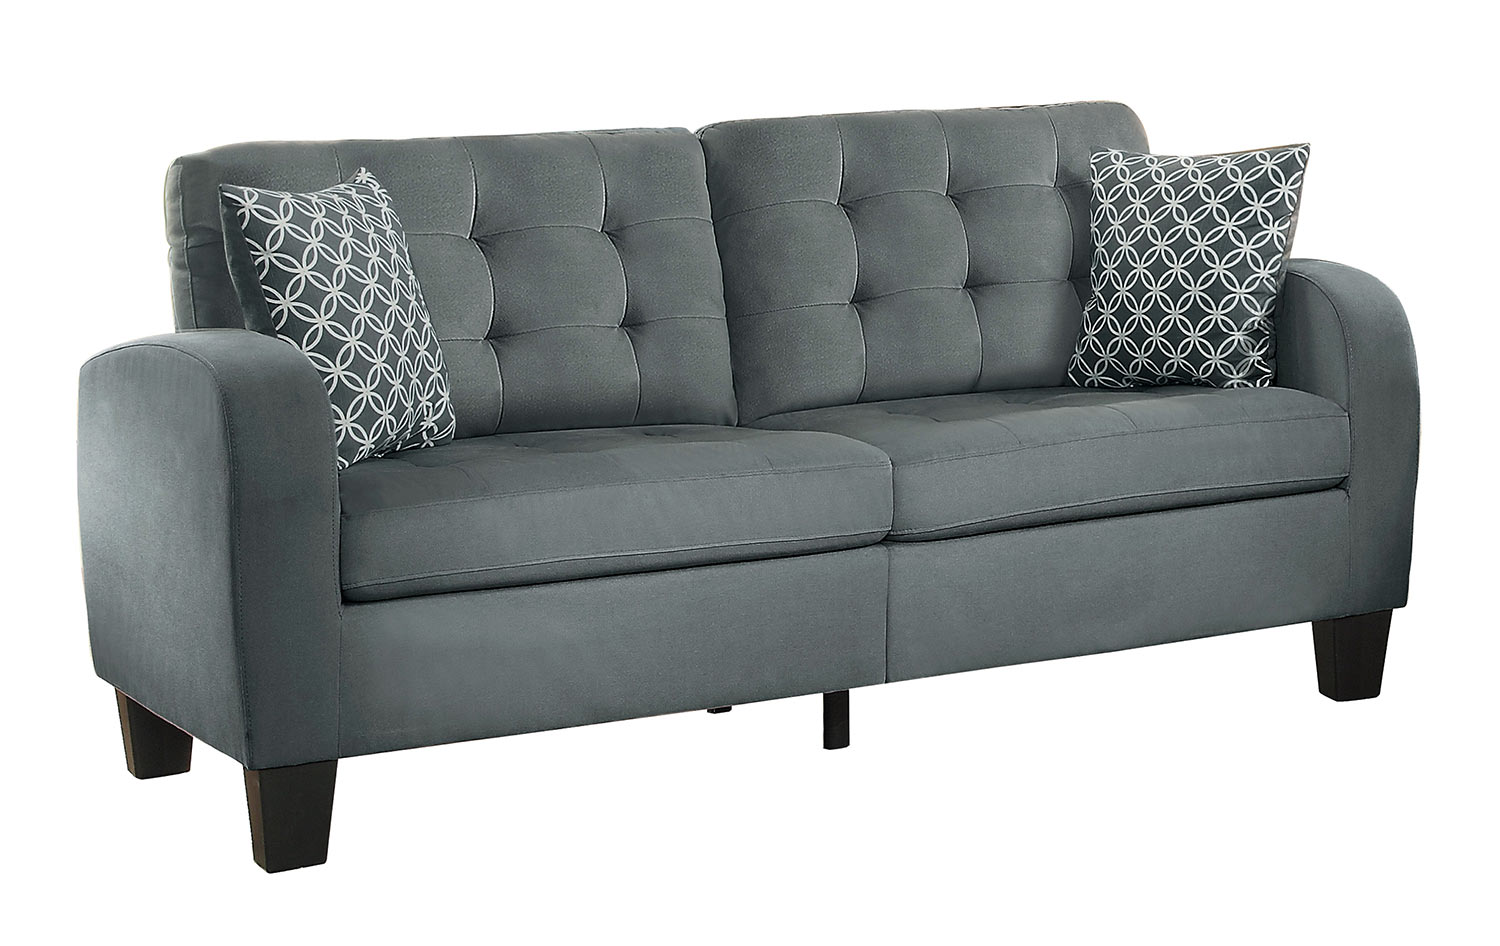 homelegance sinclair sofa gray fabric 8202gry 3 at